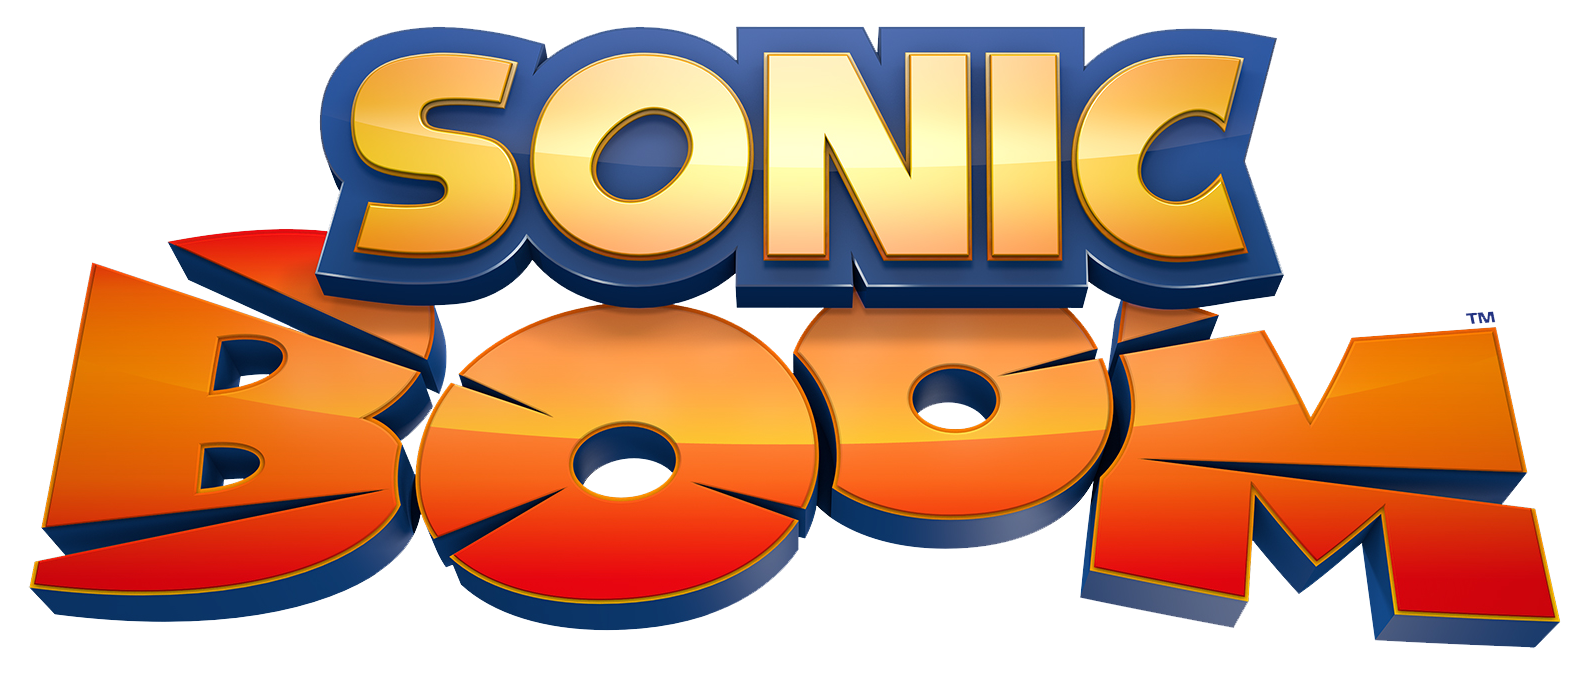 Sonic The Hedgehog Logos Gallery Sonic Scanf Sonic The Hedgehog Sonic Hedgehog